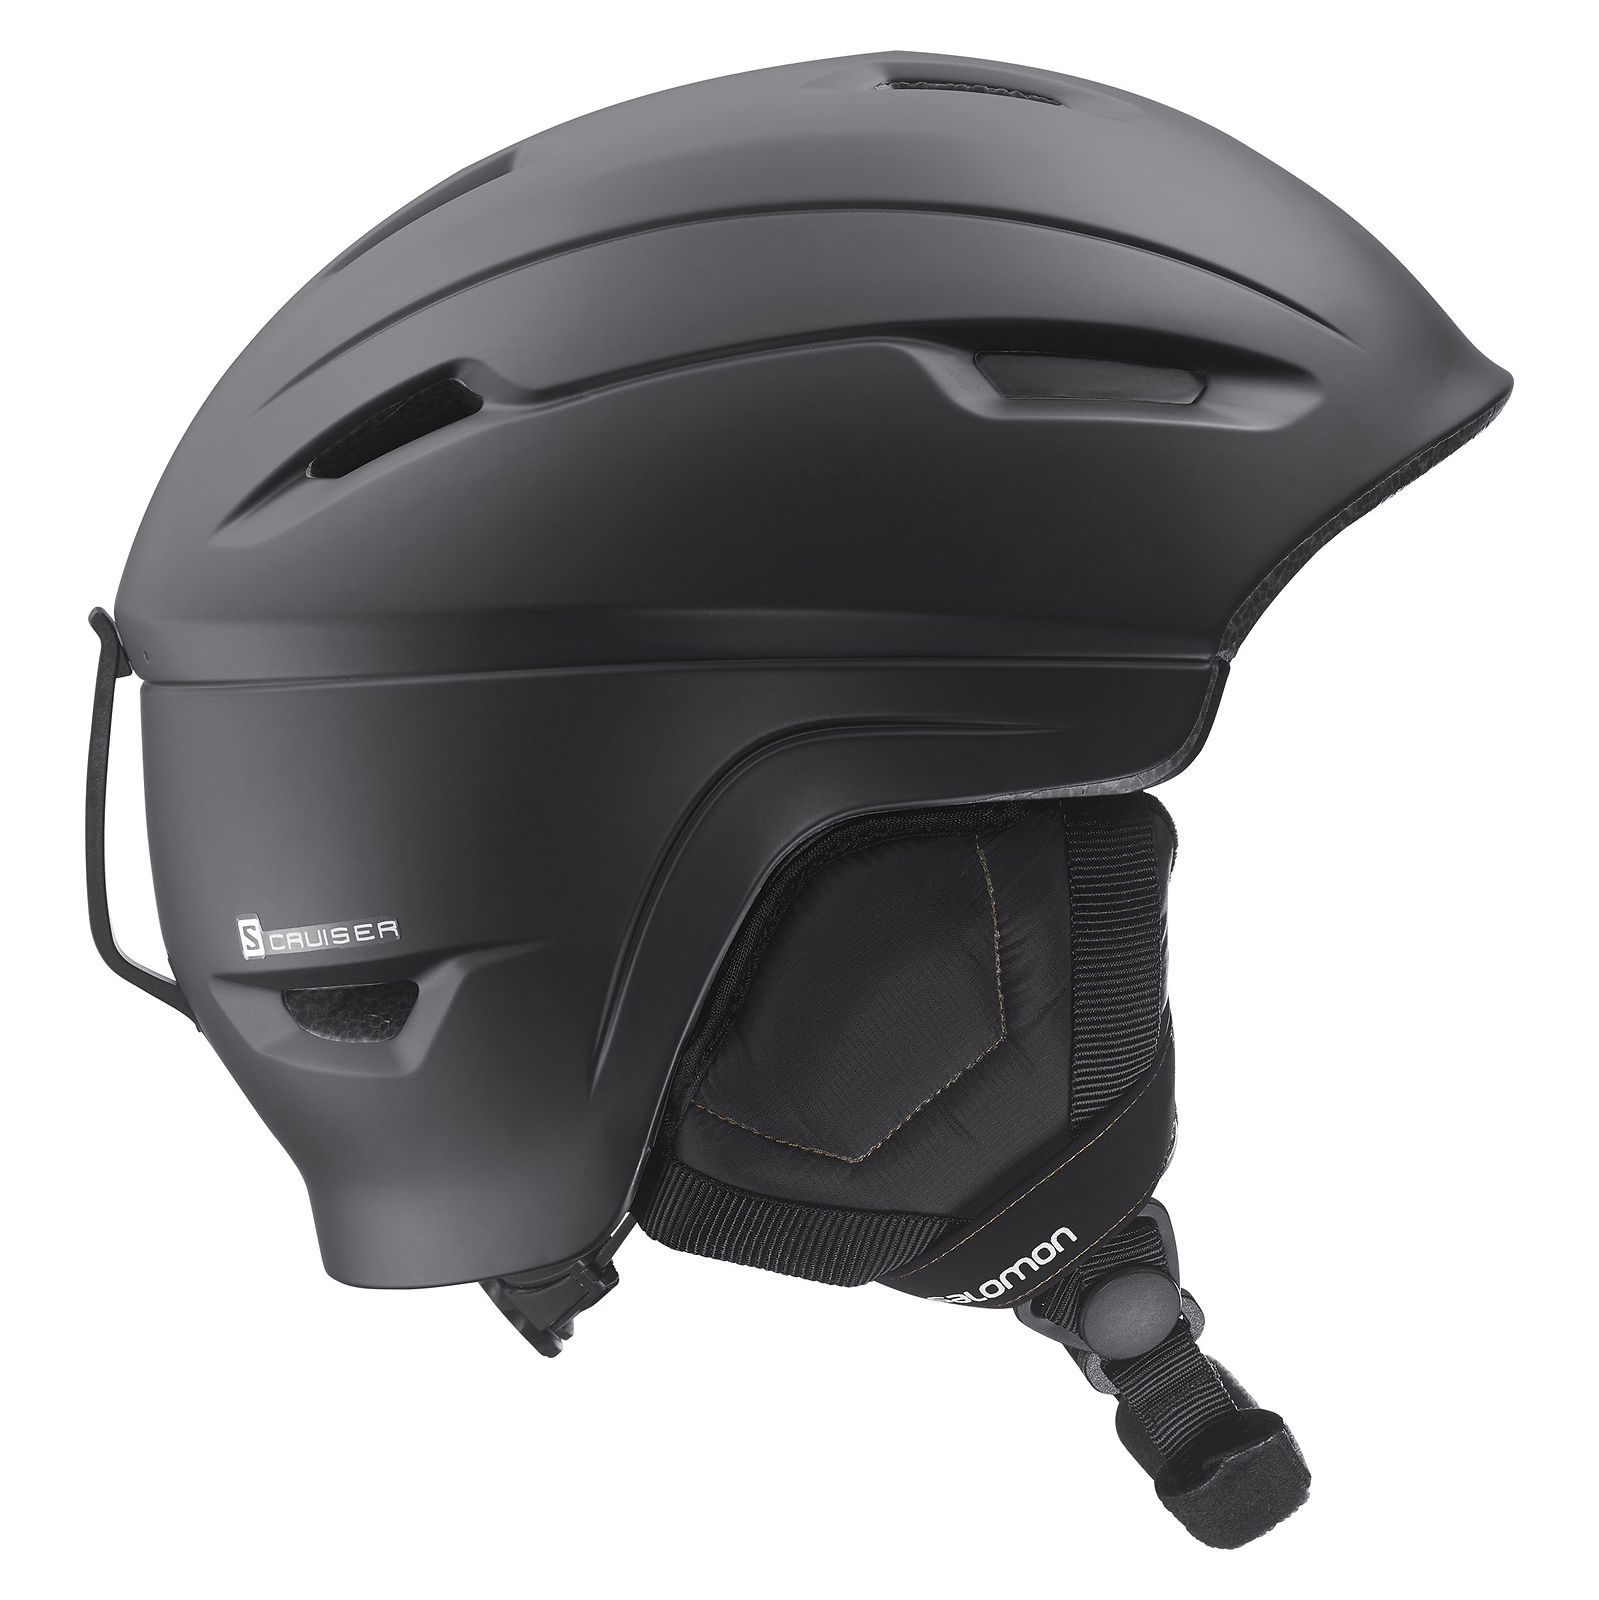 Kask Salomon Cruiser 4D 377745